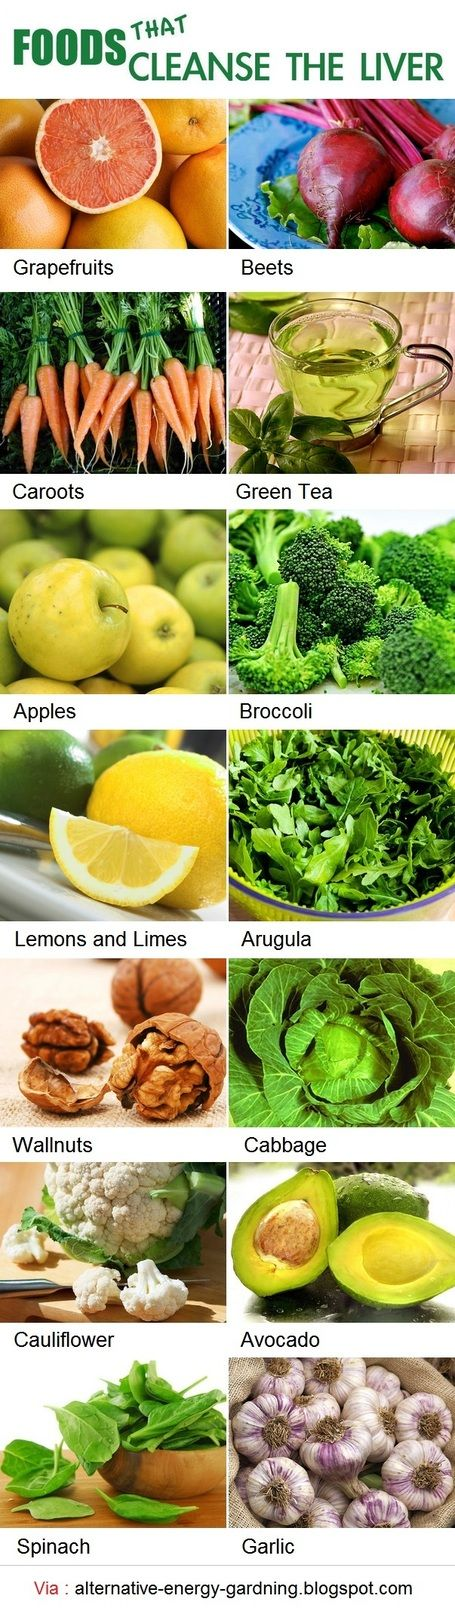 Foods that cleanse your liver